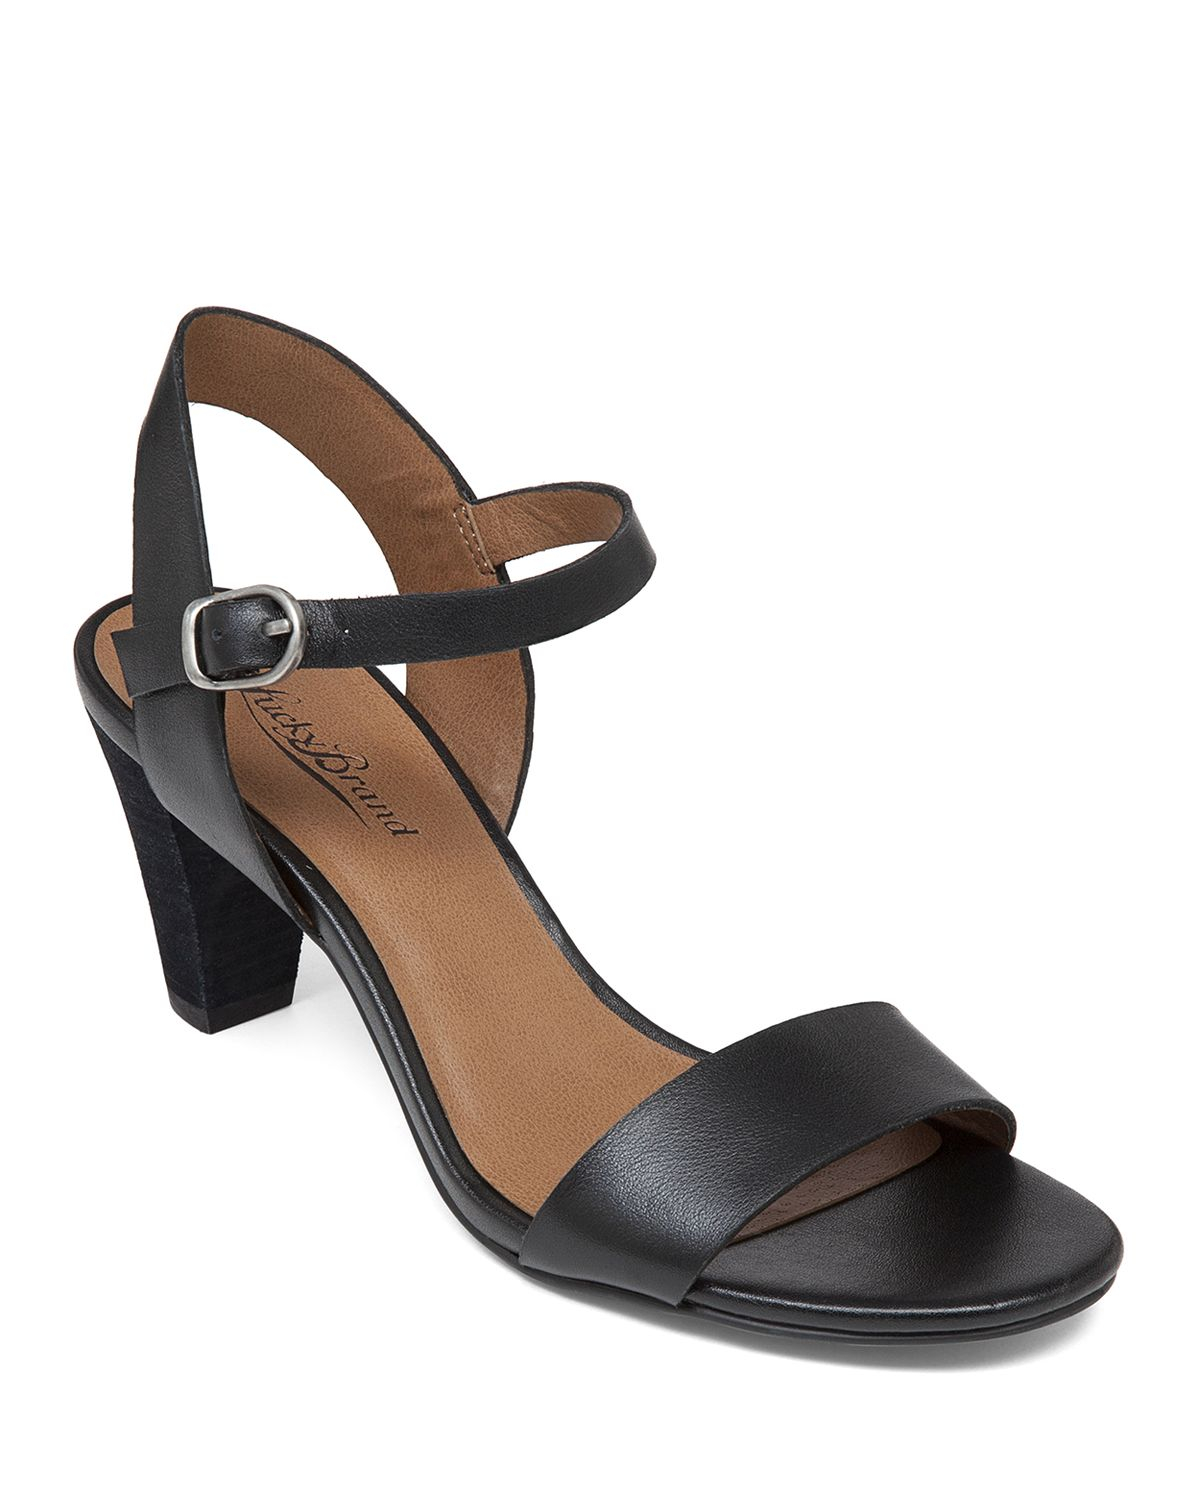 Women's Sandals: Free Shipping on orders over $45 at Find the latest styles of Shoes from ajaykumarchejarla.ml Your Online Women's Shoes Store! Get 5% in rewards with Club O!